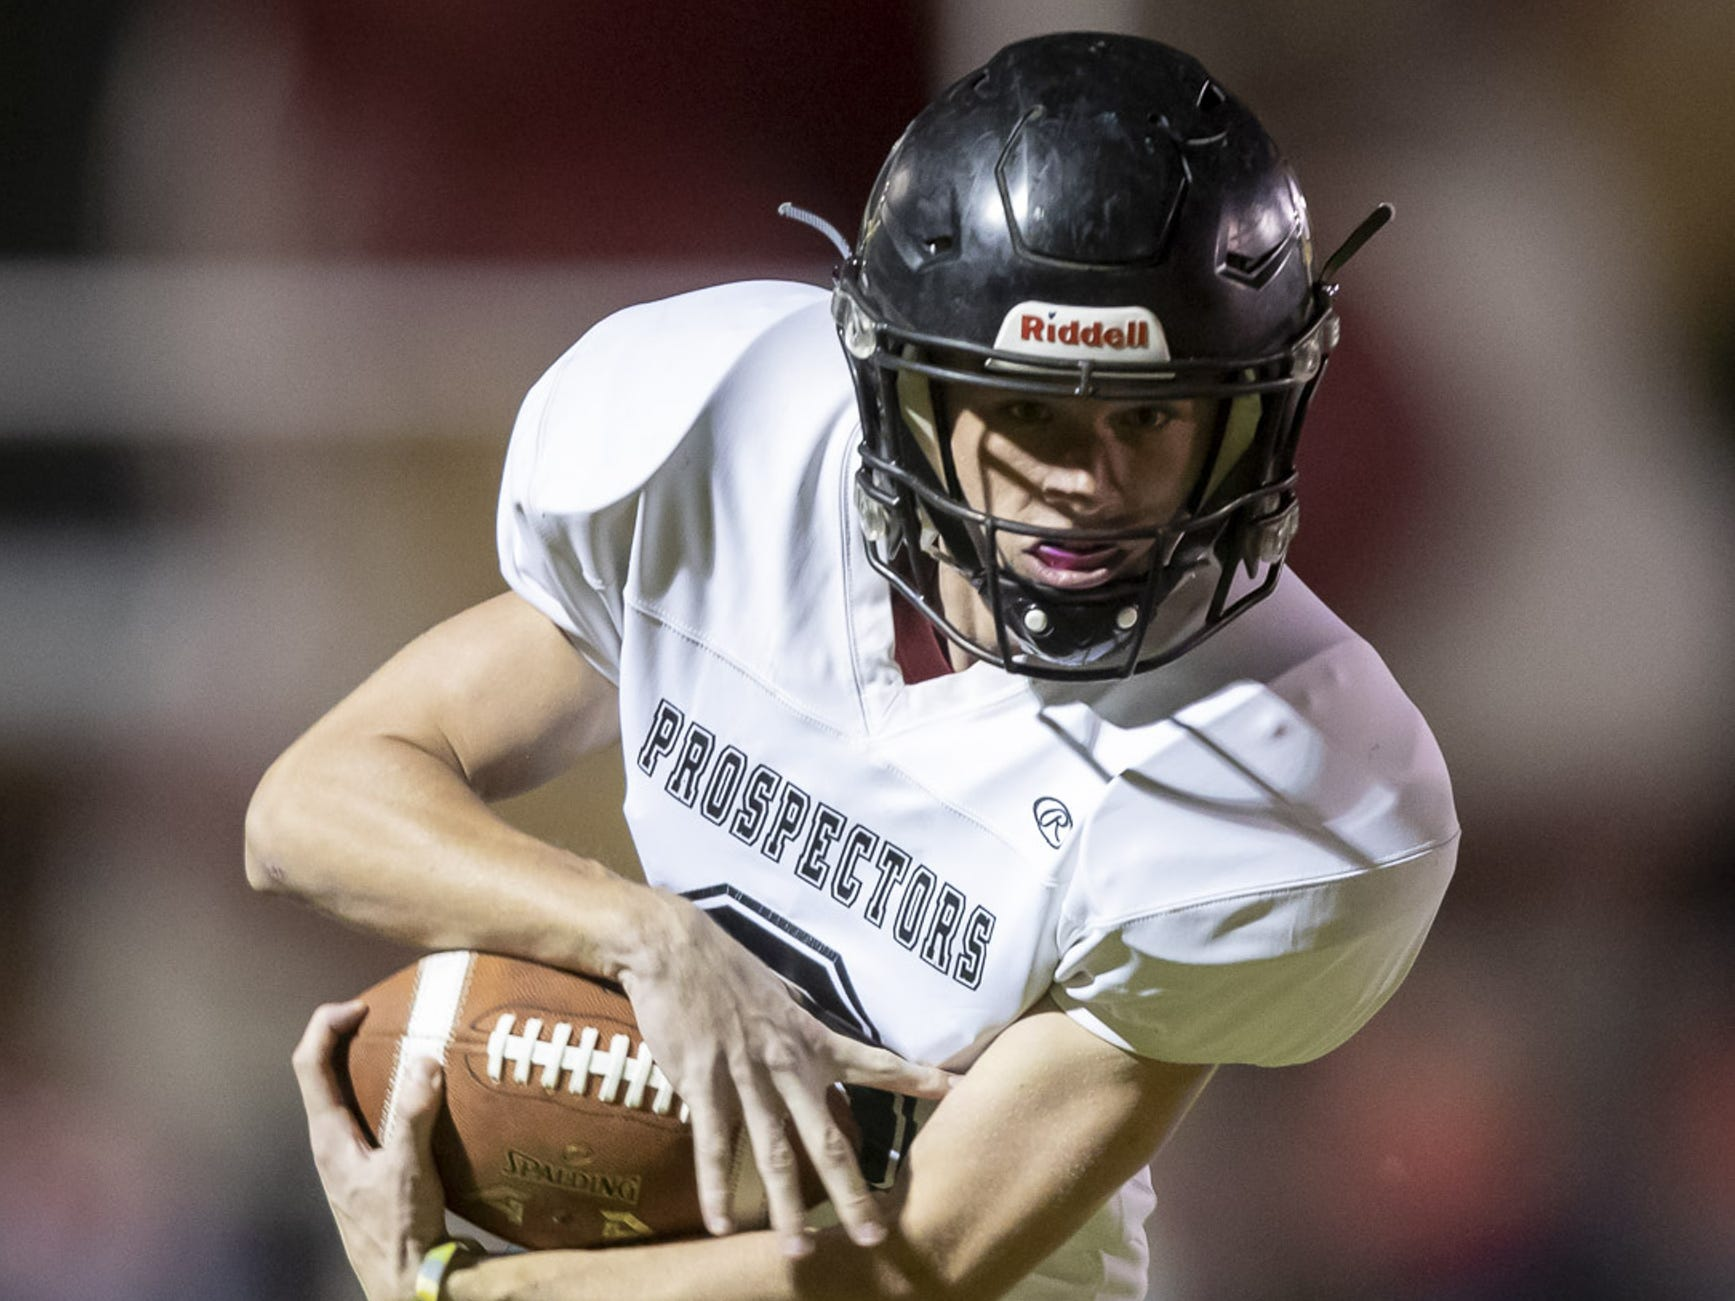 Junior wide receiver Tommy Ryan (6) of the Apache Junction Prospectors runs the ball against the Glendale Cardinals at Glendale High School on Friday, October 19, 2018 in Glendale, Arizona. #azhsfb